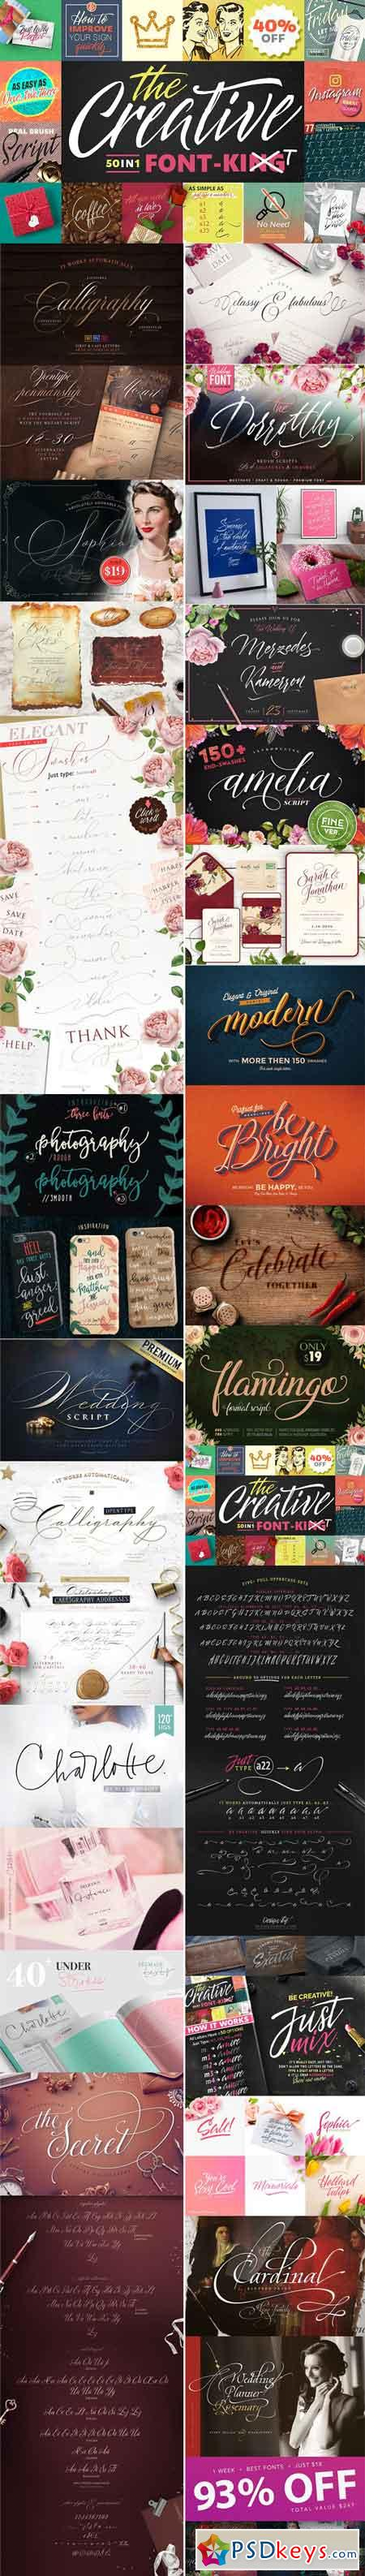 1 WEEK BEST FONTS 2576531